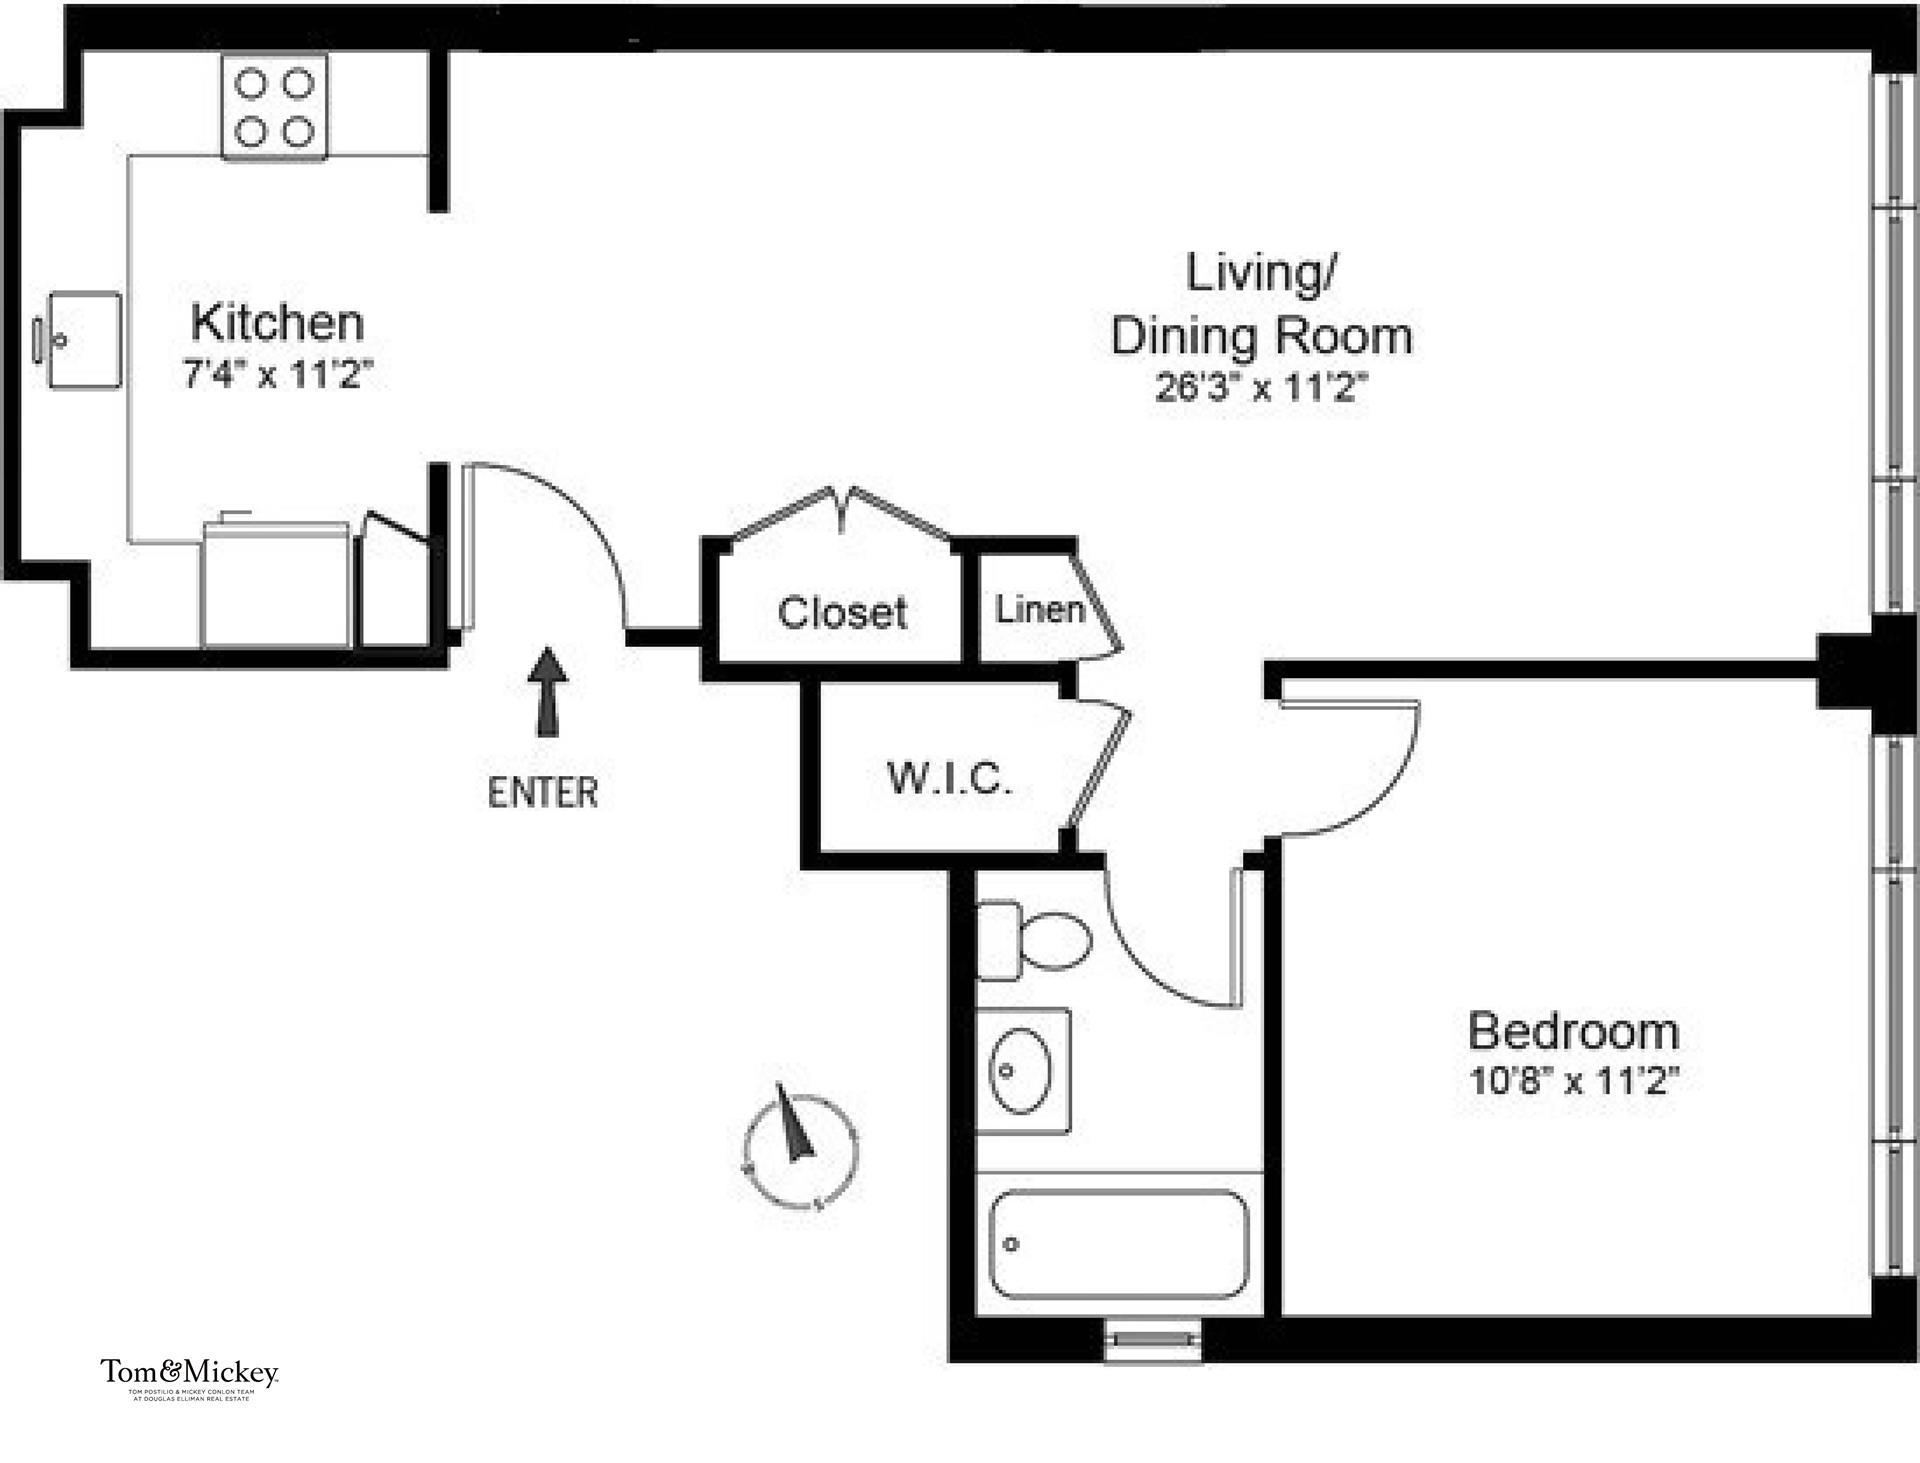 Floor plan of 845 Second Avenue, 5A - Turtle Bay, New York